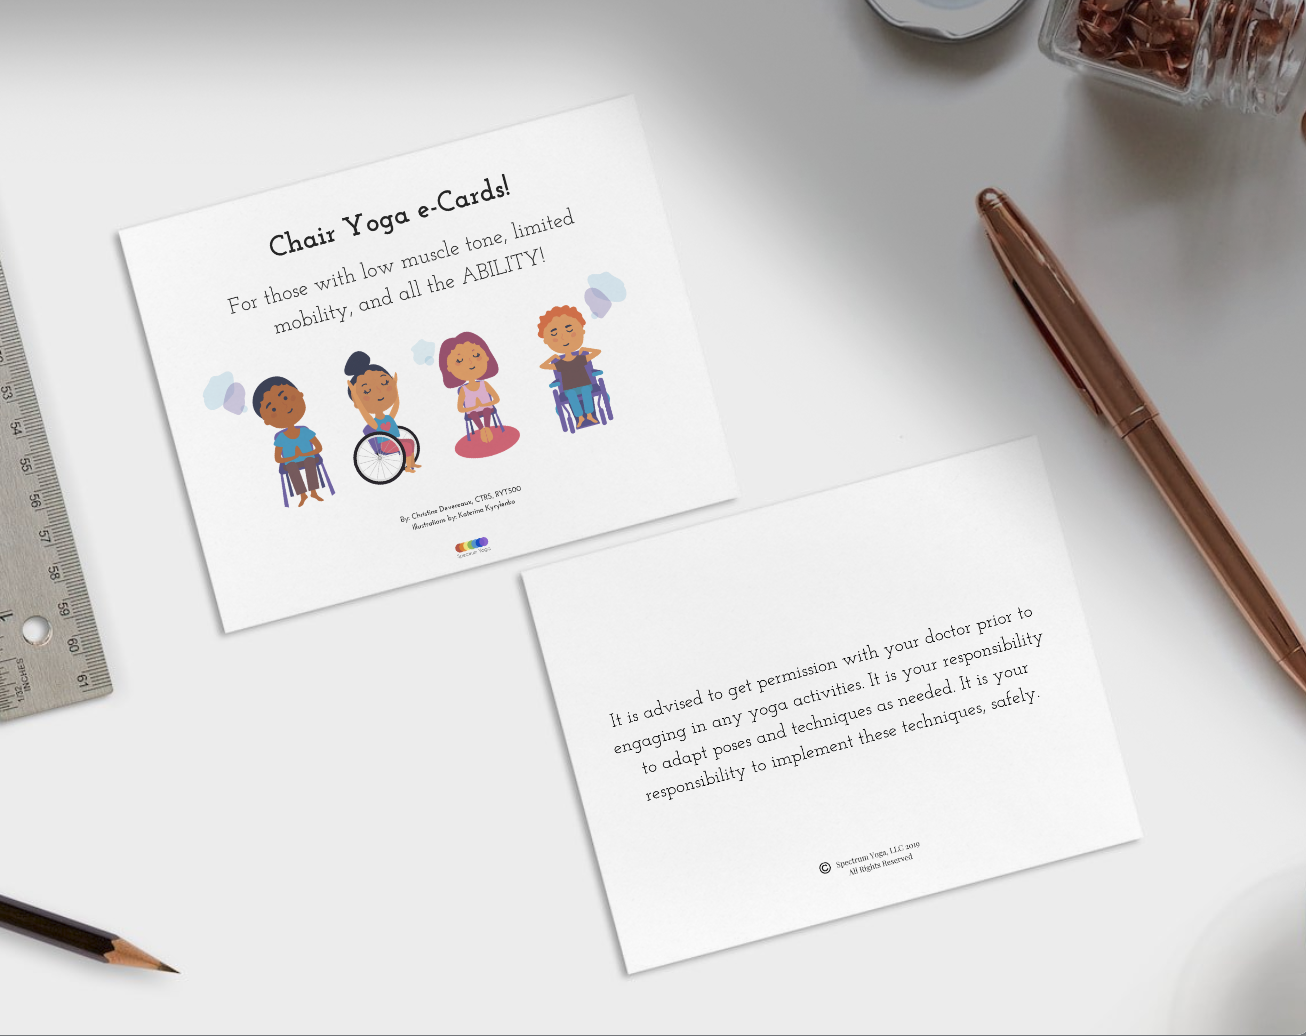 Chair Yoga e-Card Deck - For those with all the ABILITY and for classroom settings.Lesson Plan Included.